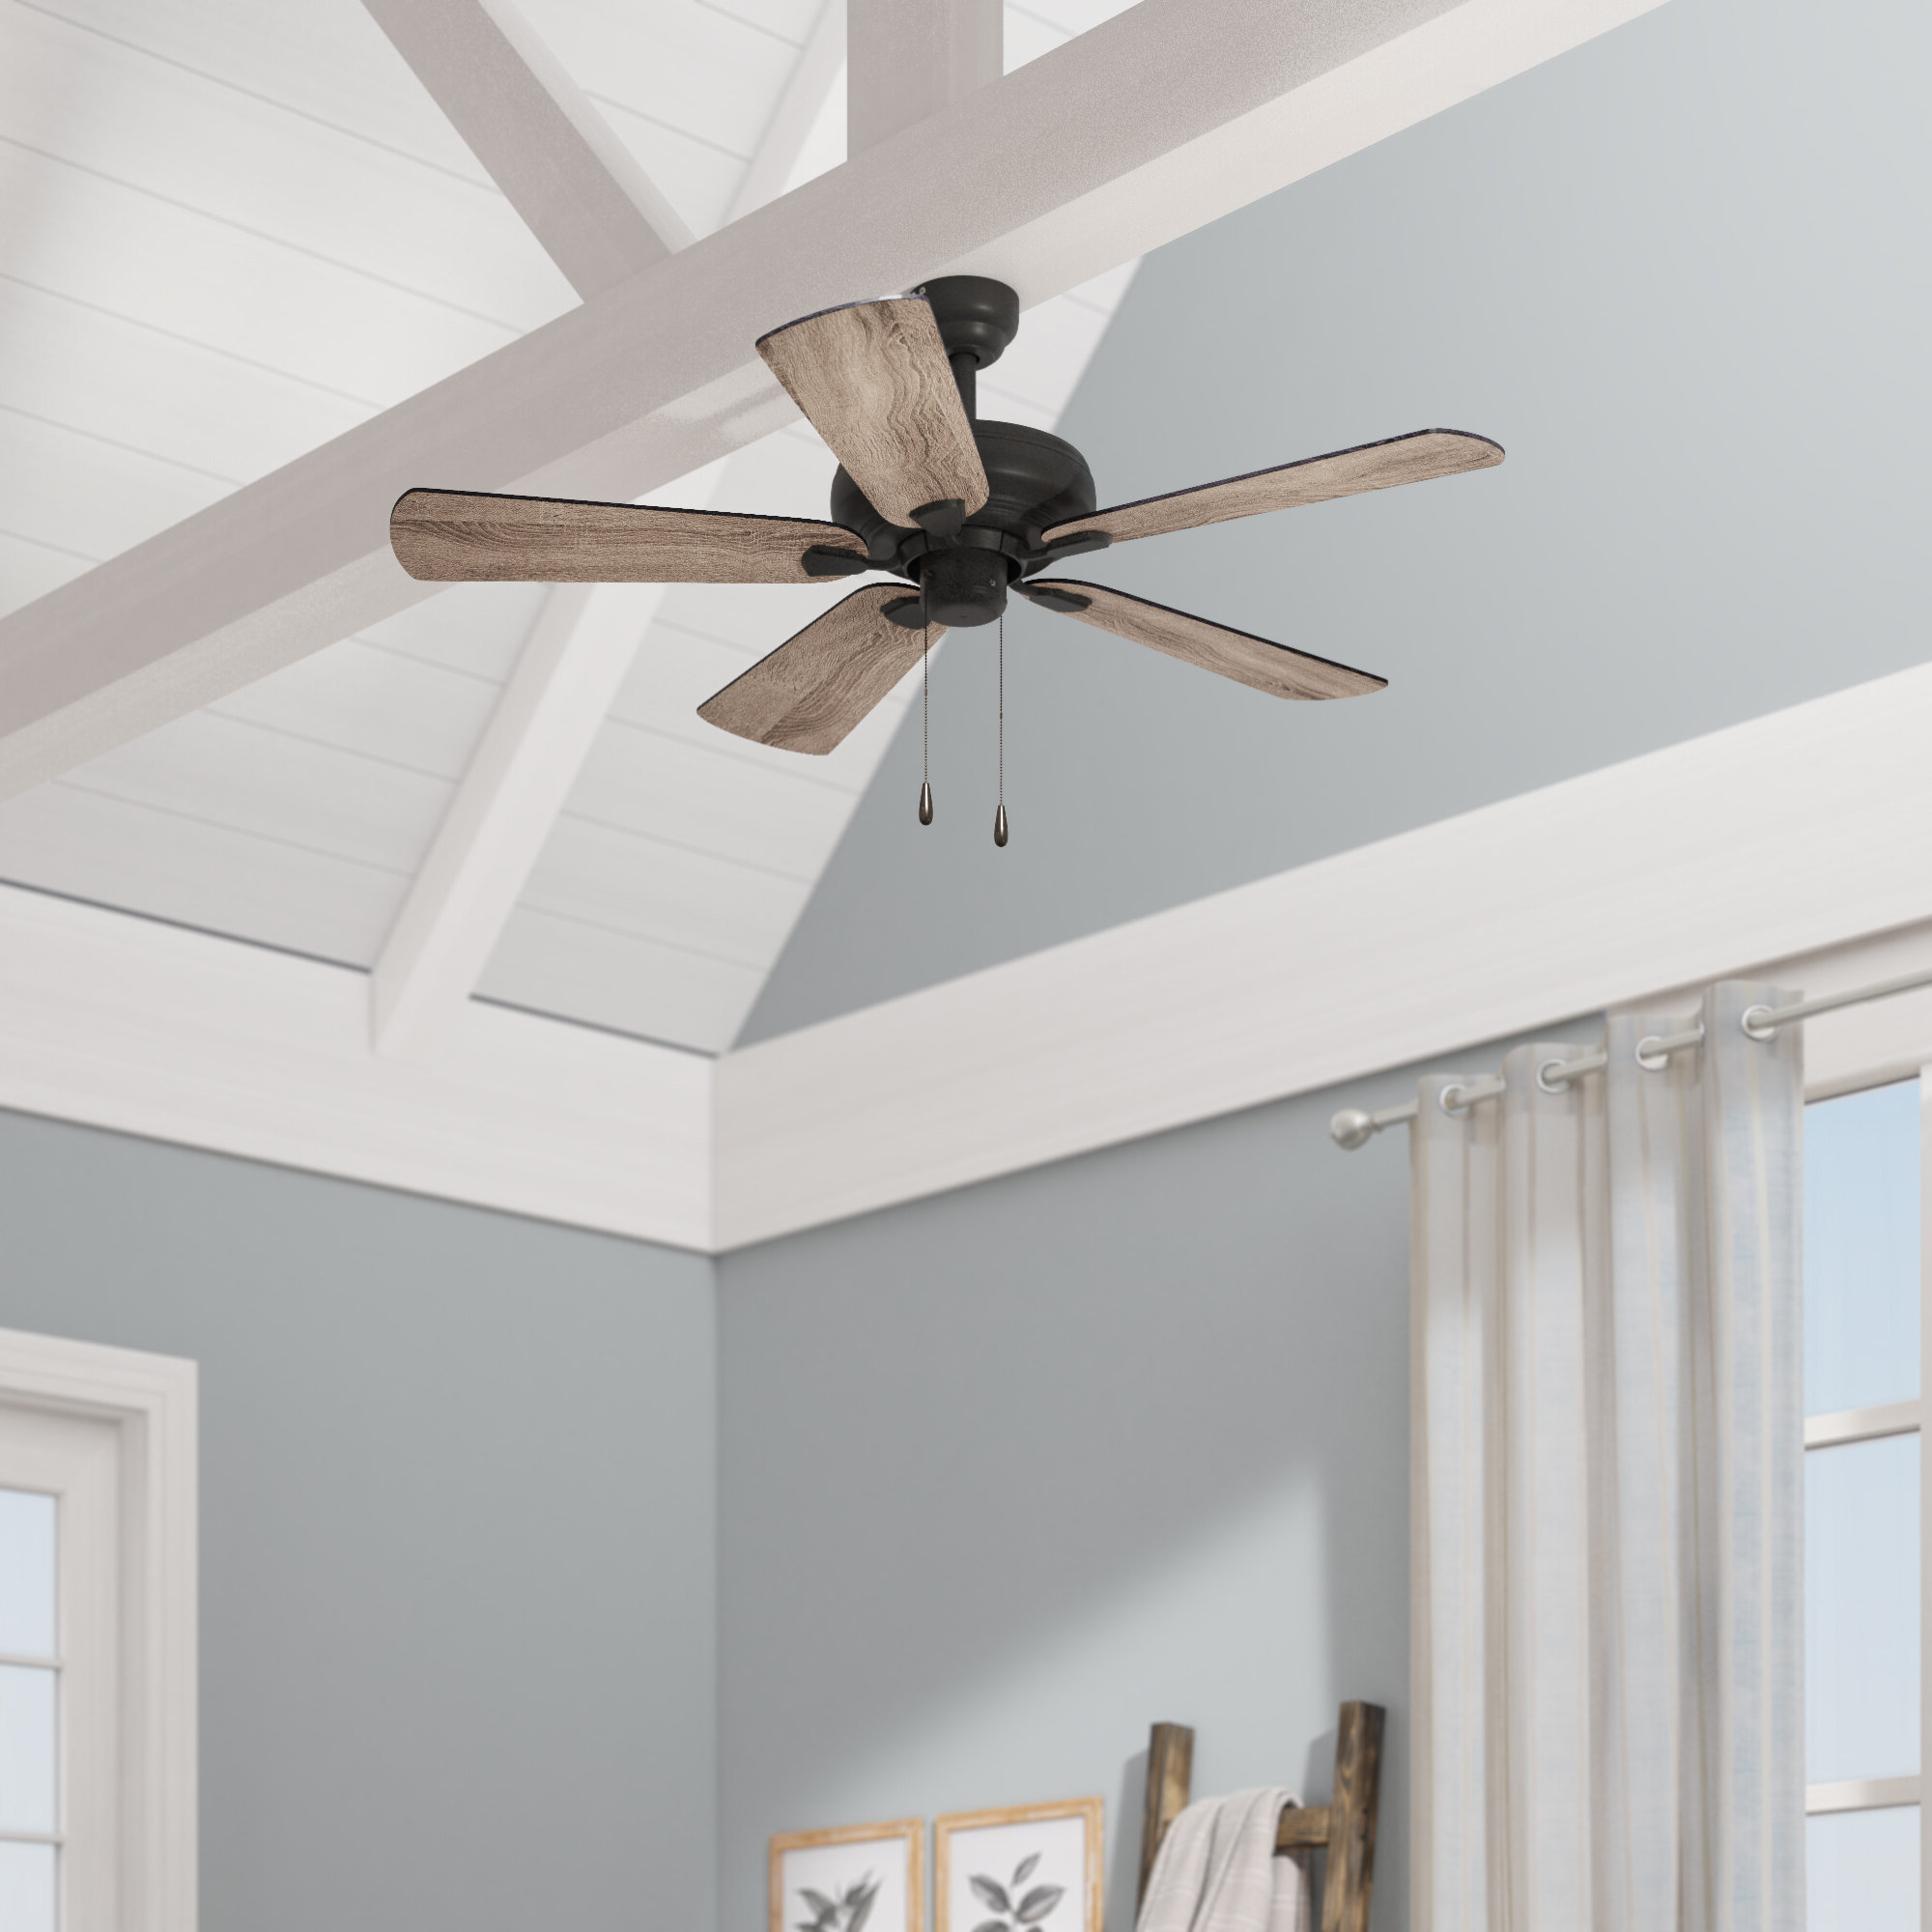 "Hatherton 5 Blade Ceiling Fans Pertaining To 2019 42"" Raseborg 5 Blade Ceiling Fan (View 9 of 20)"